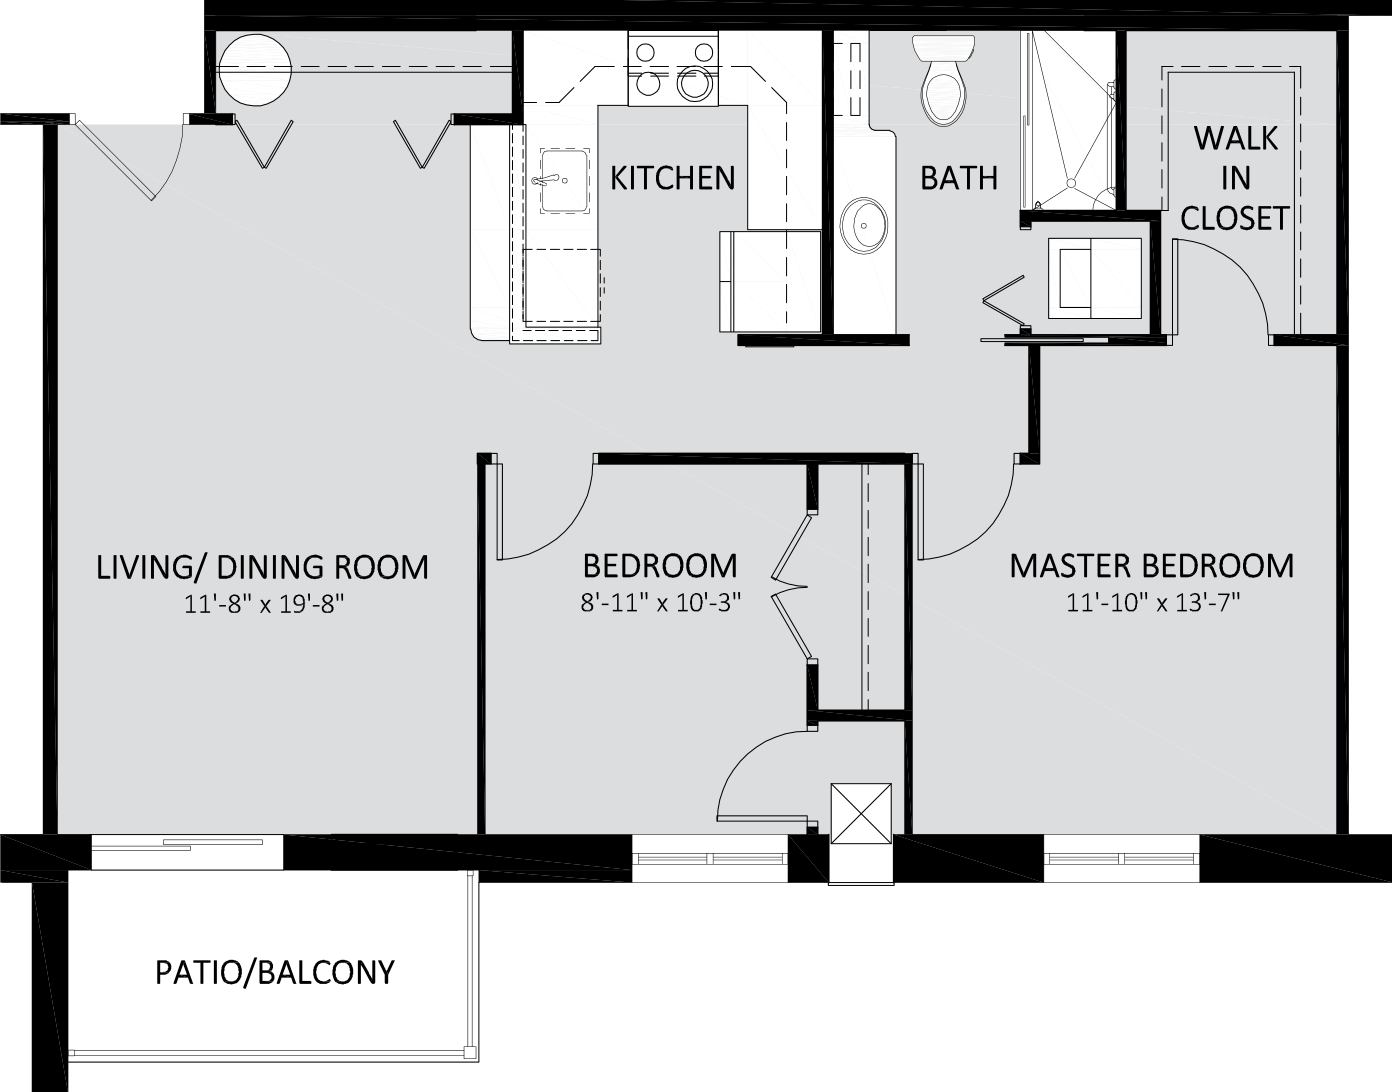 NFE Independence I Traditional Two Bedroom 778 Sq Ft.png